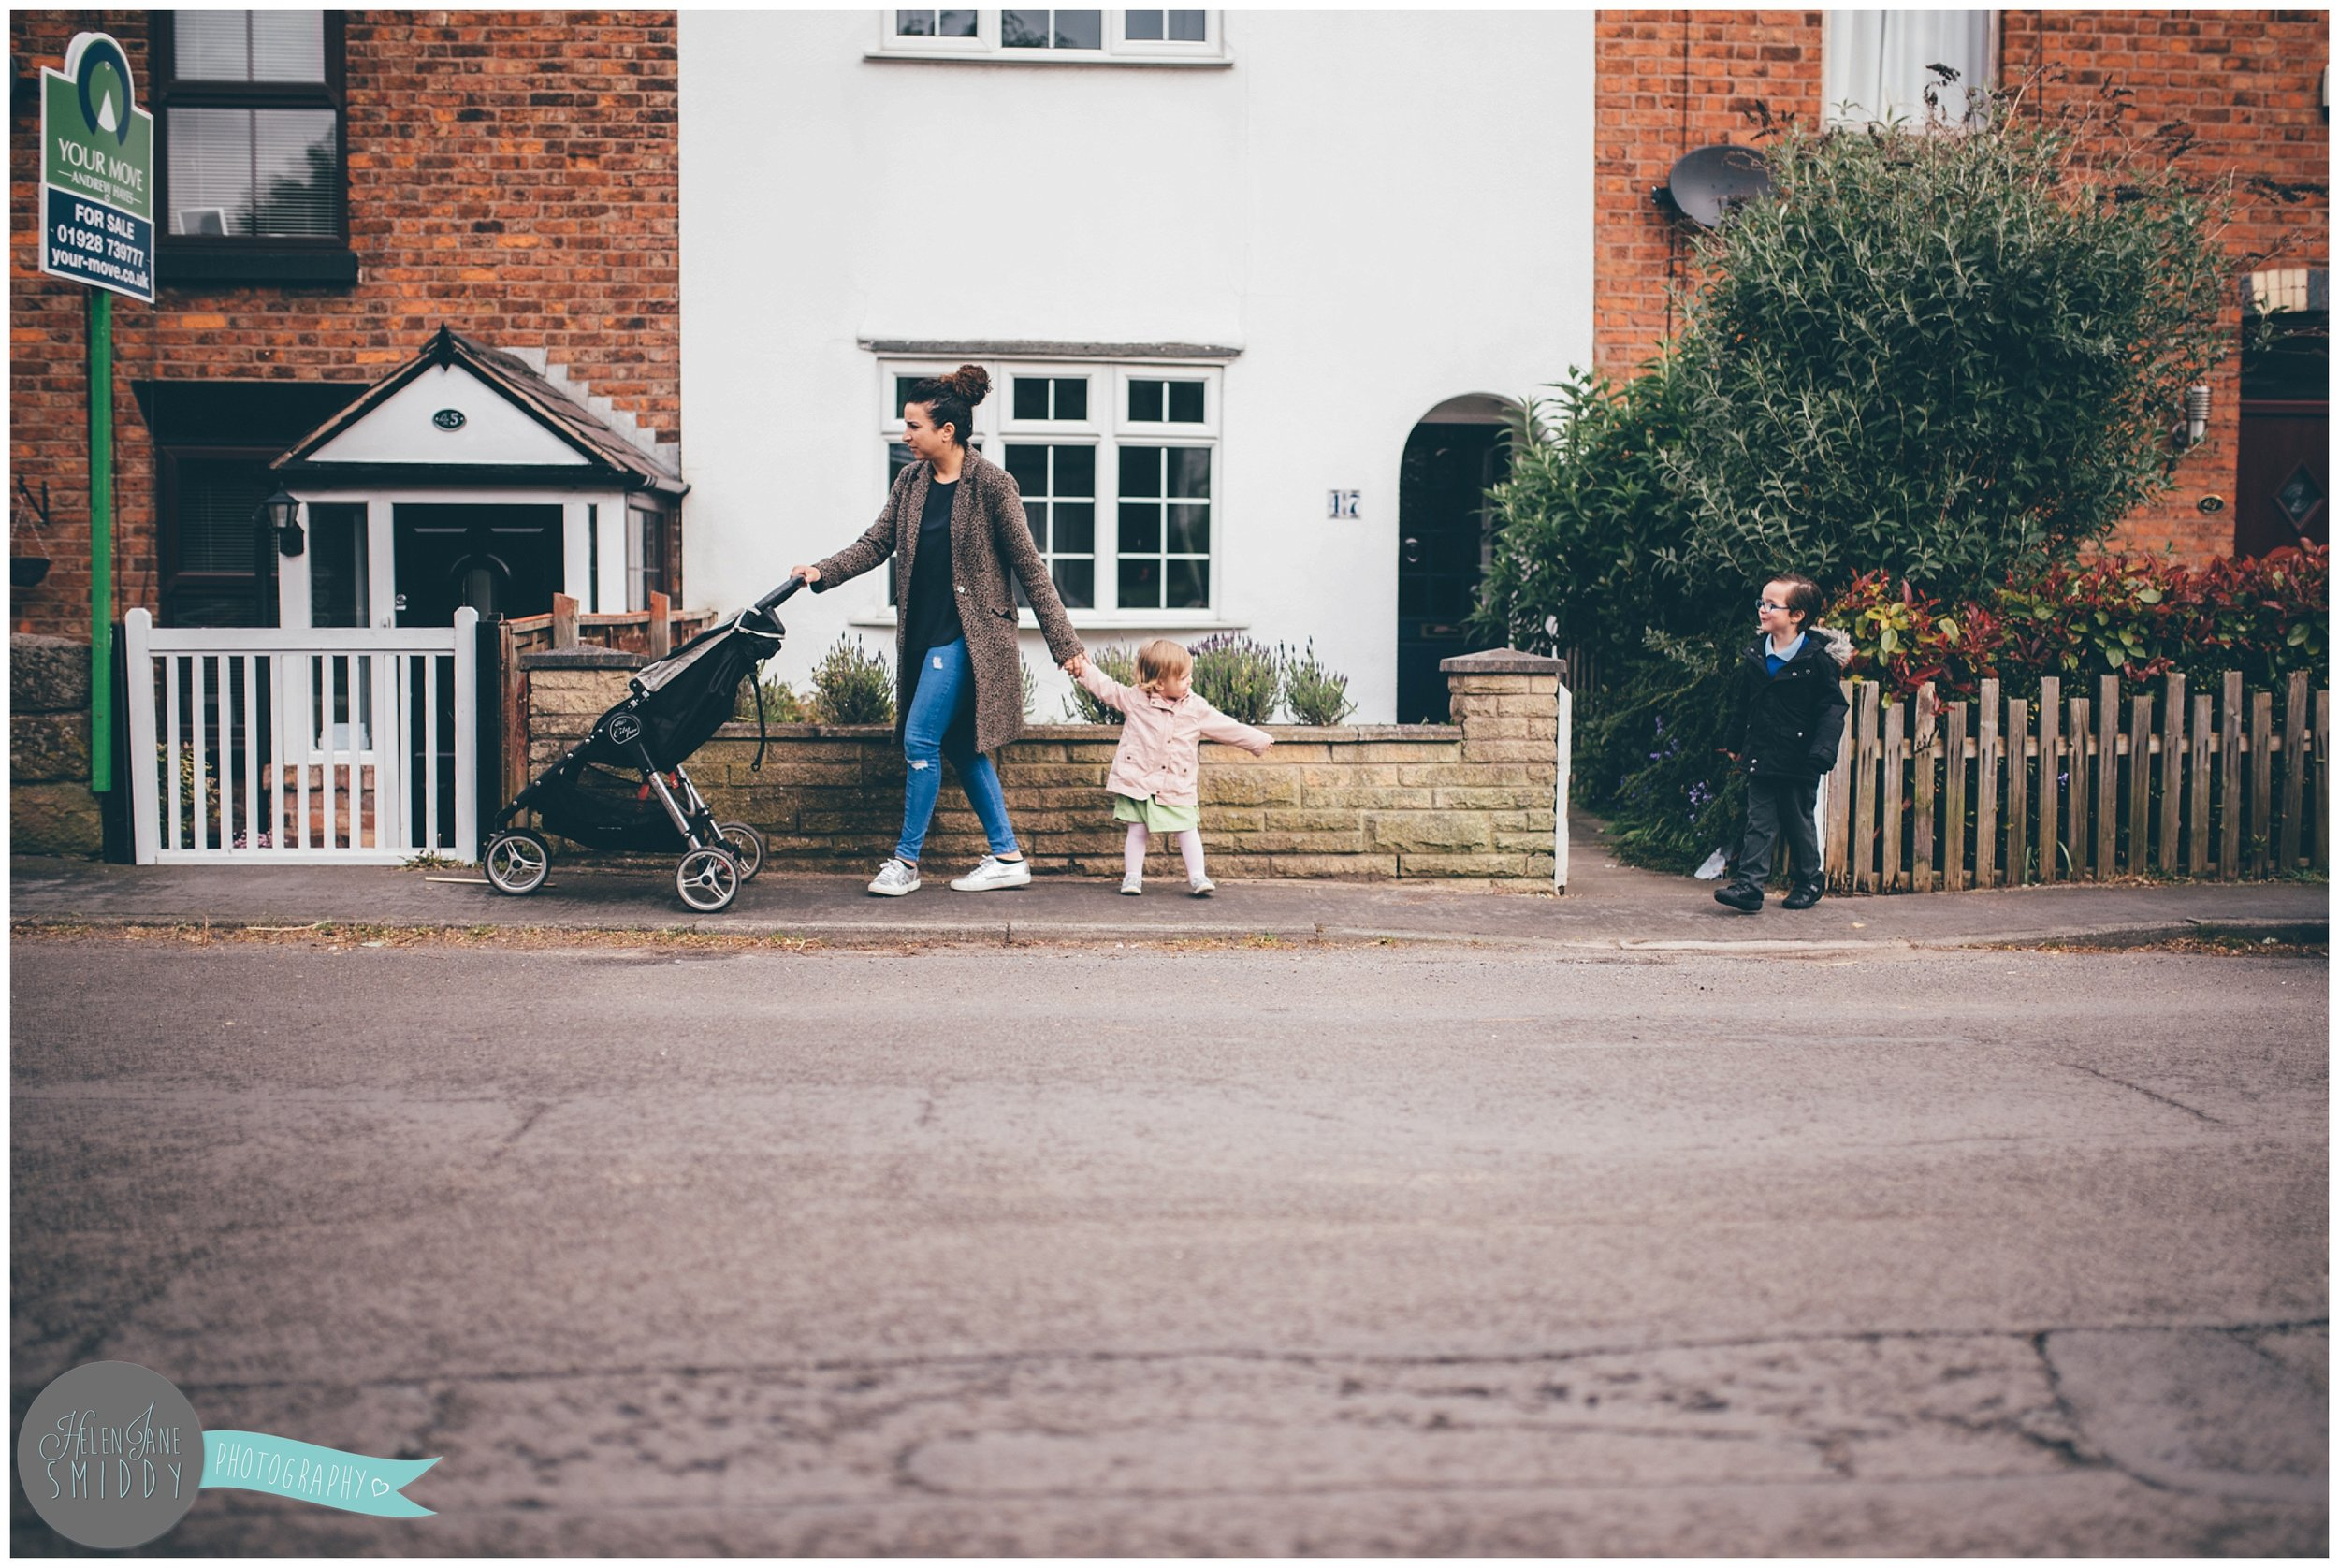 Walking to school during A Day In The Life photoshoot in Frodsham.